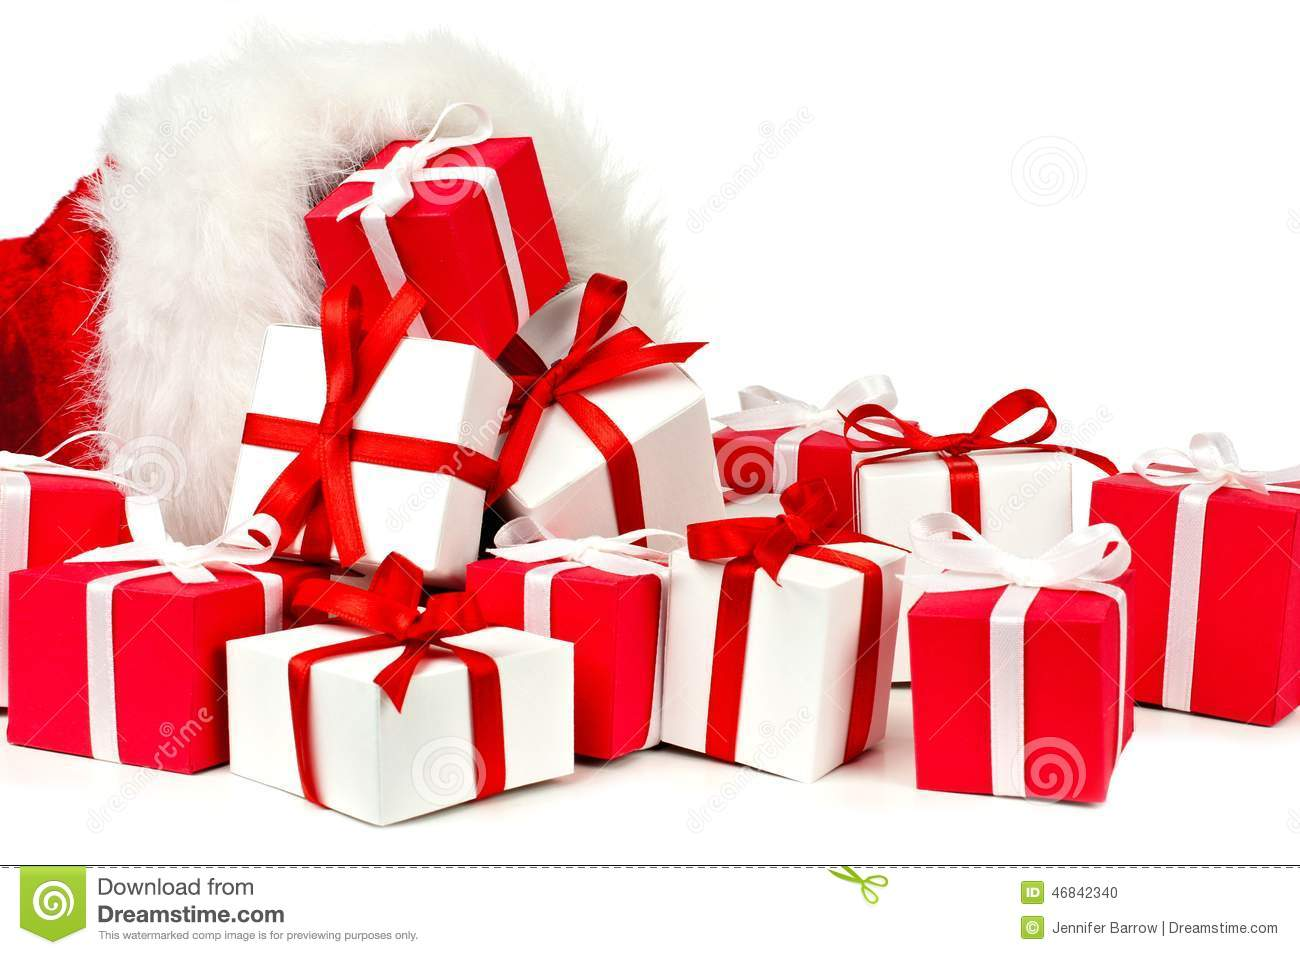 Santa Claus Gift Bag With Spilling Gifts Stock Photo - Image: 46842340